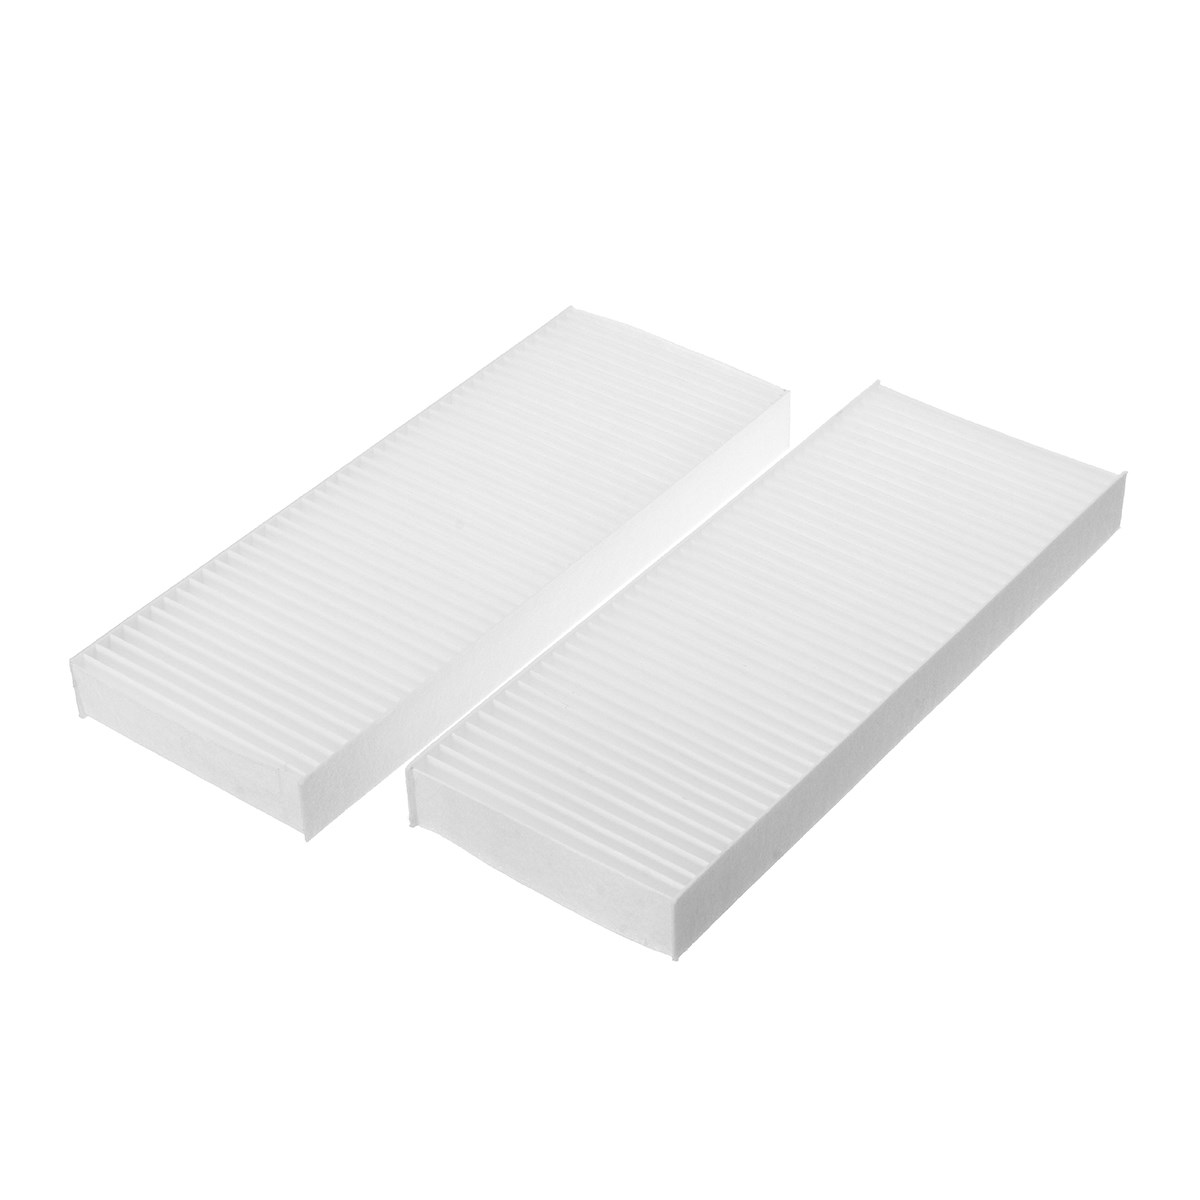 2 Pcs/Set FC25764 C25764 Cabin <font><b>Air</b></font> <font><b>Filters</b></font> Set For Nissan /Frontier /Pathfinder /Xterra /Equator Champ CAF1813 <font><b>Fram</b></font> CF10553